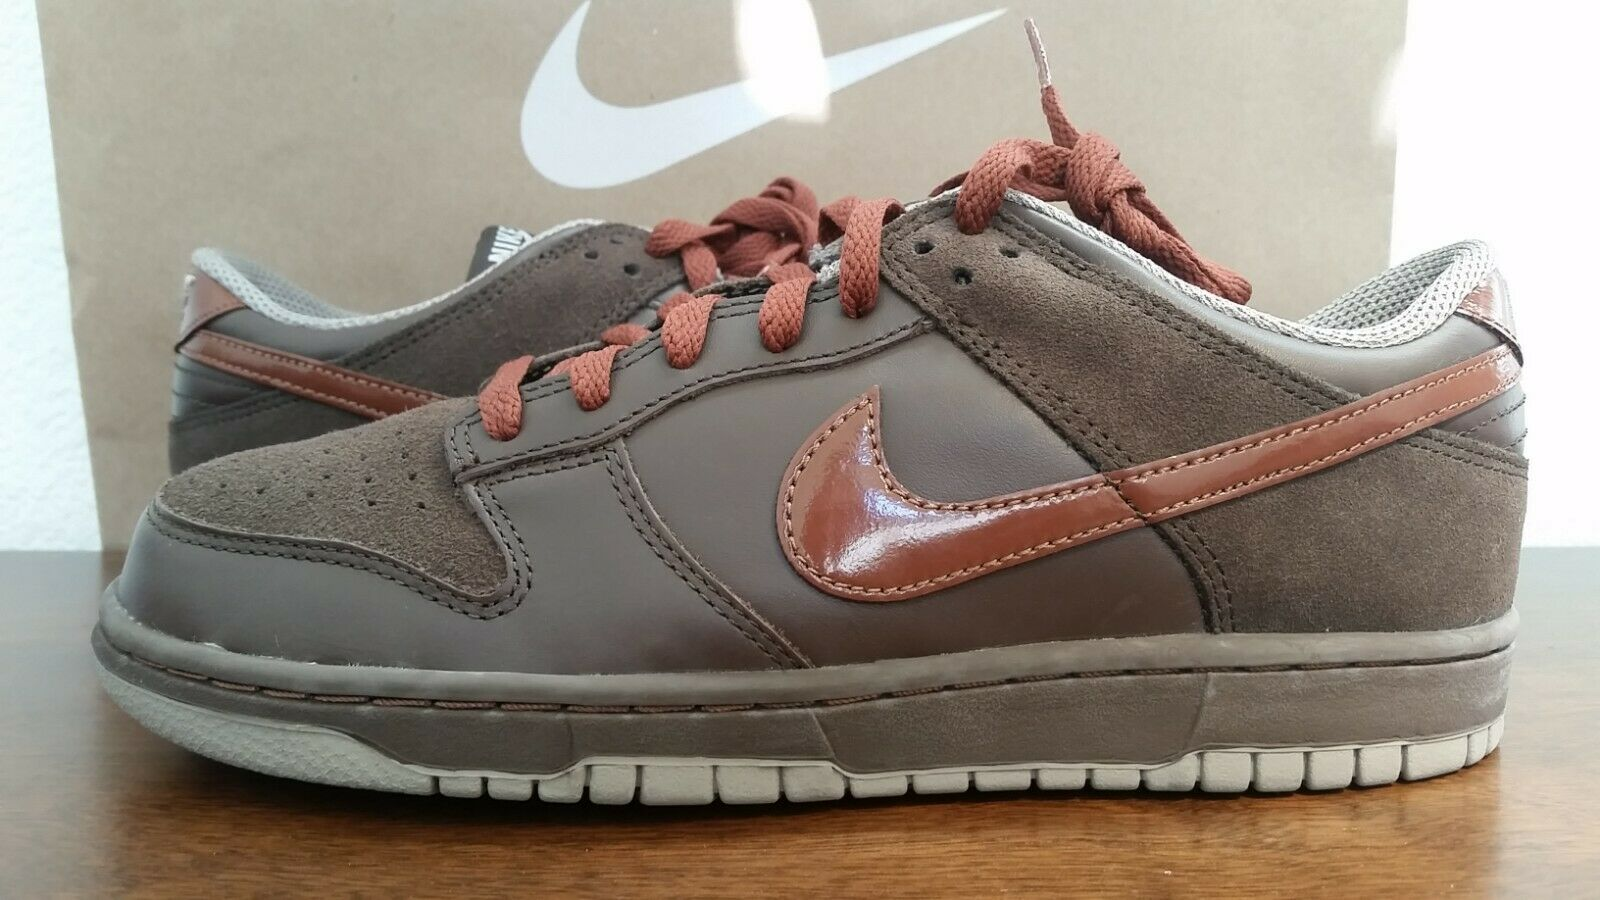 DS 2006 Nike Dunk ID 9